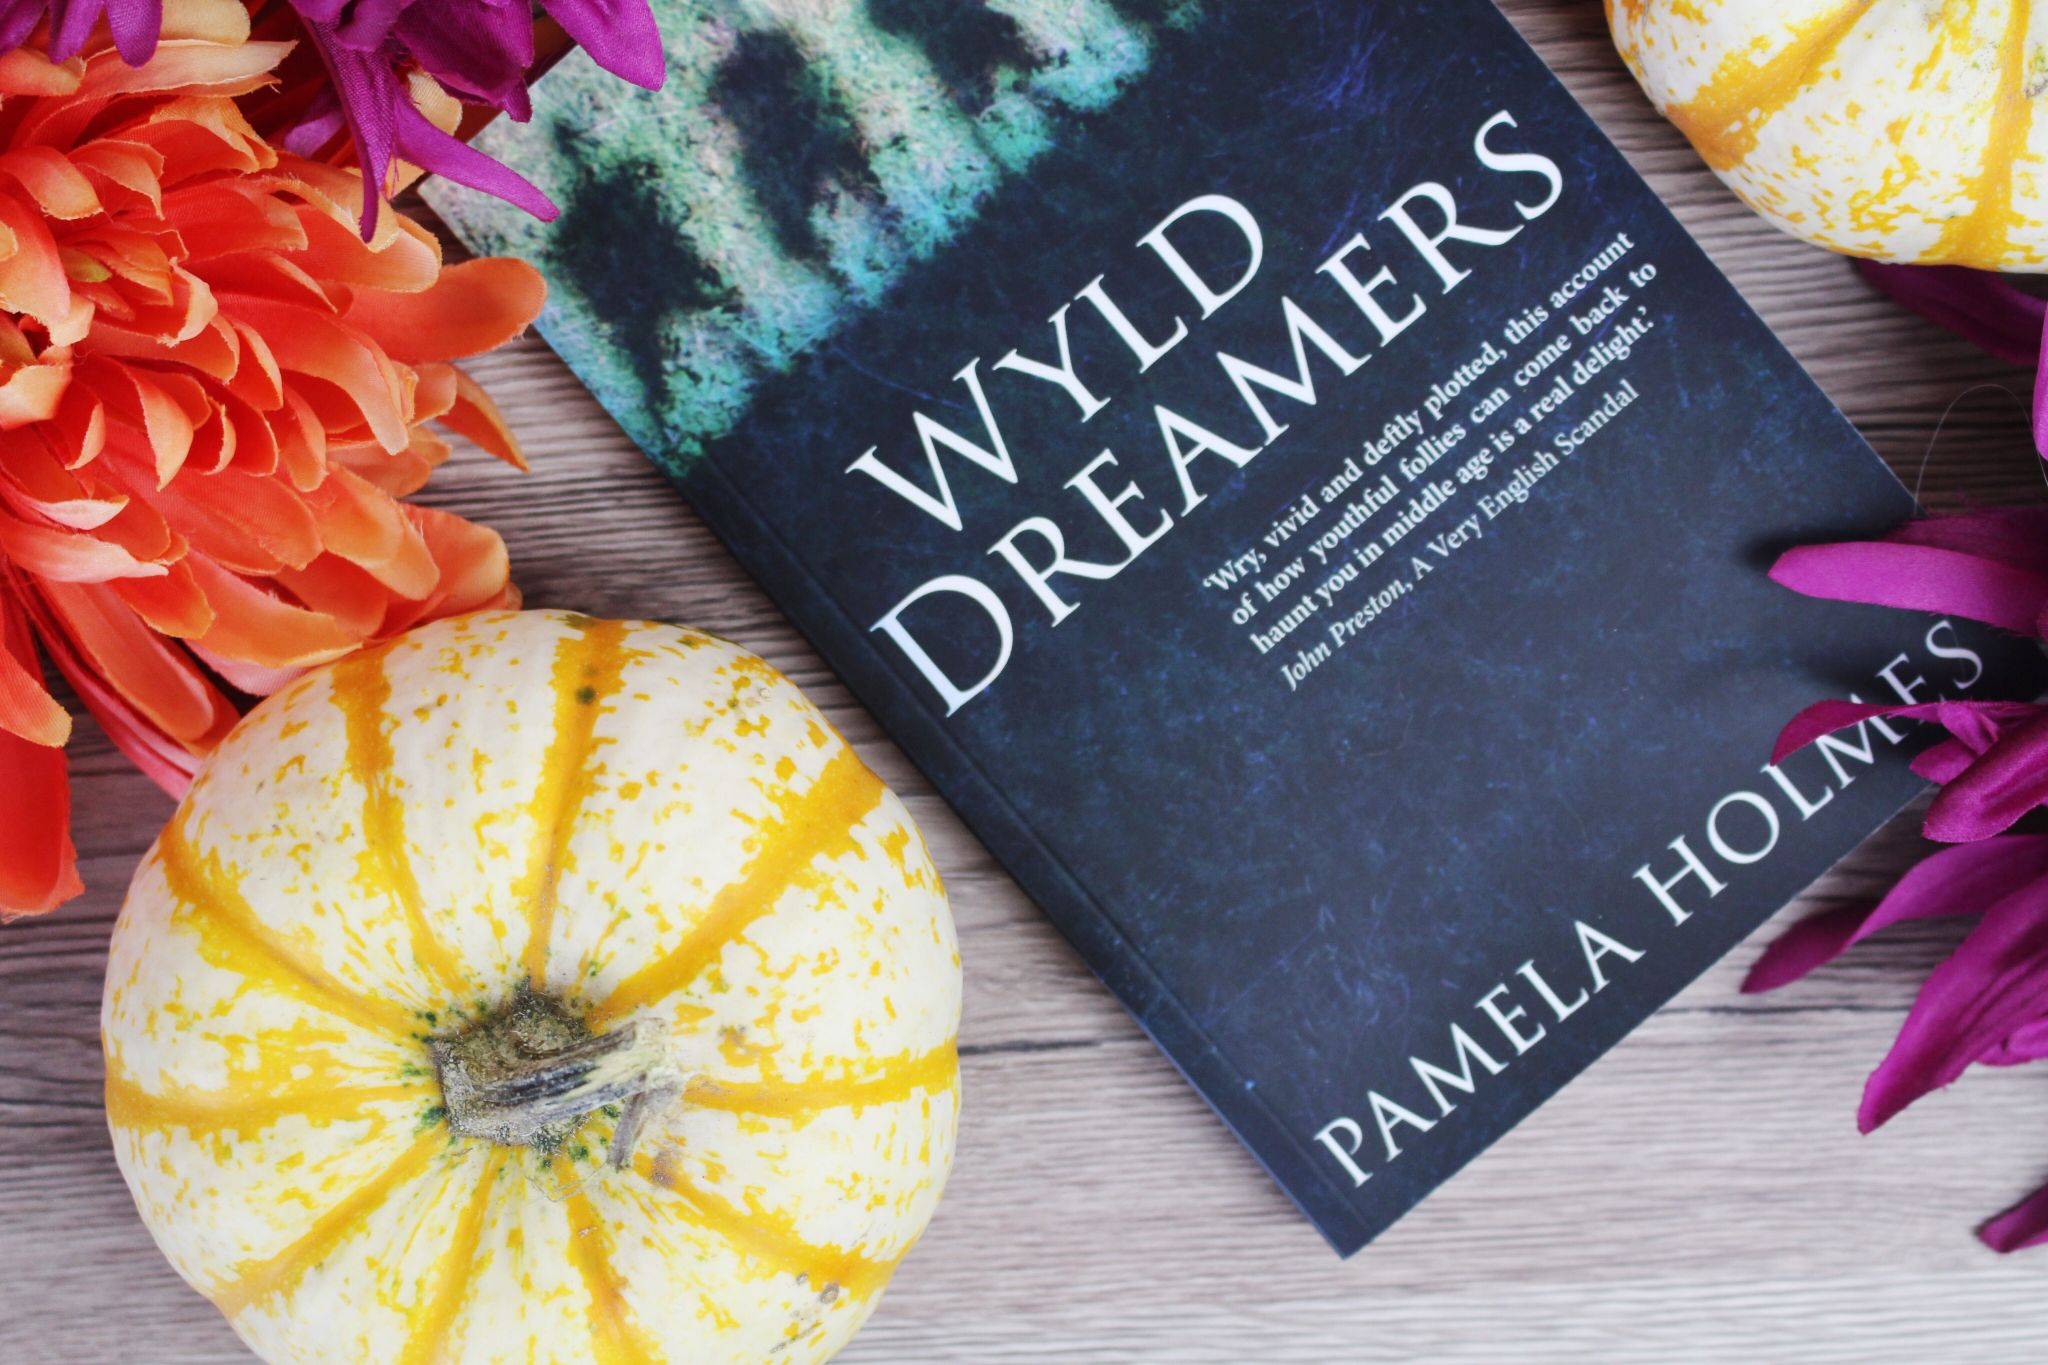 Clem Loves Wyld Dreamers